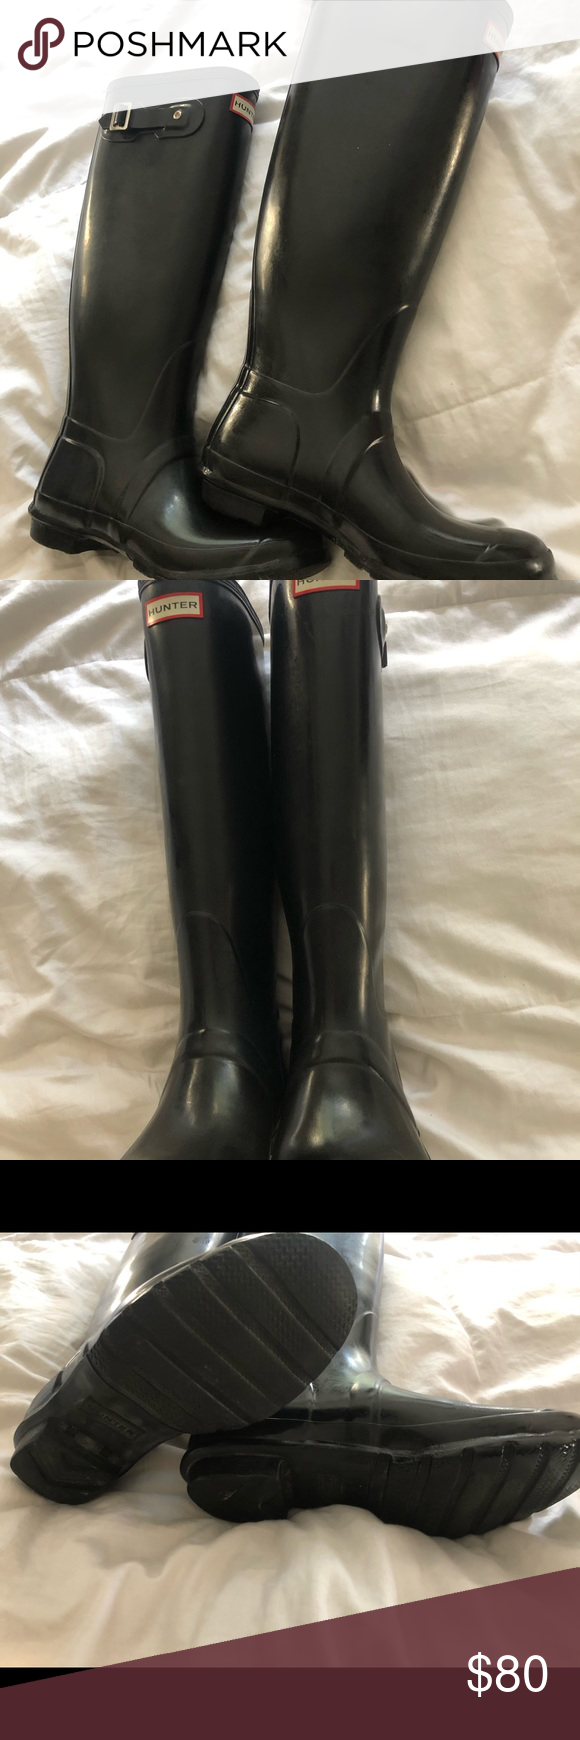 HUNTER BOOTS ADORABLE Hunter Boots, fit like a 8/9 good condition! Some wear but overall good condition Hunter Shoes Winter & Rain Boots #myposhpicks